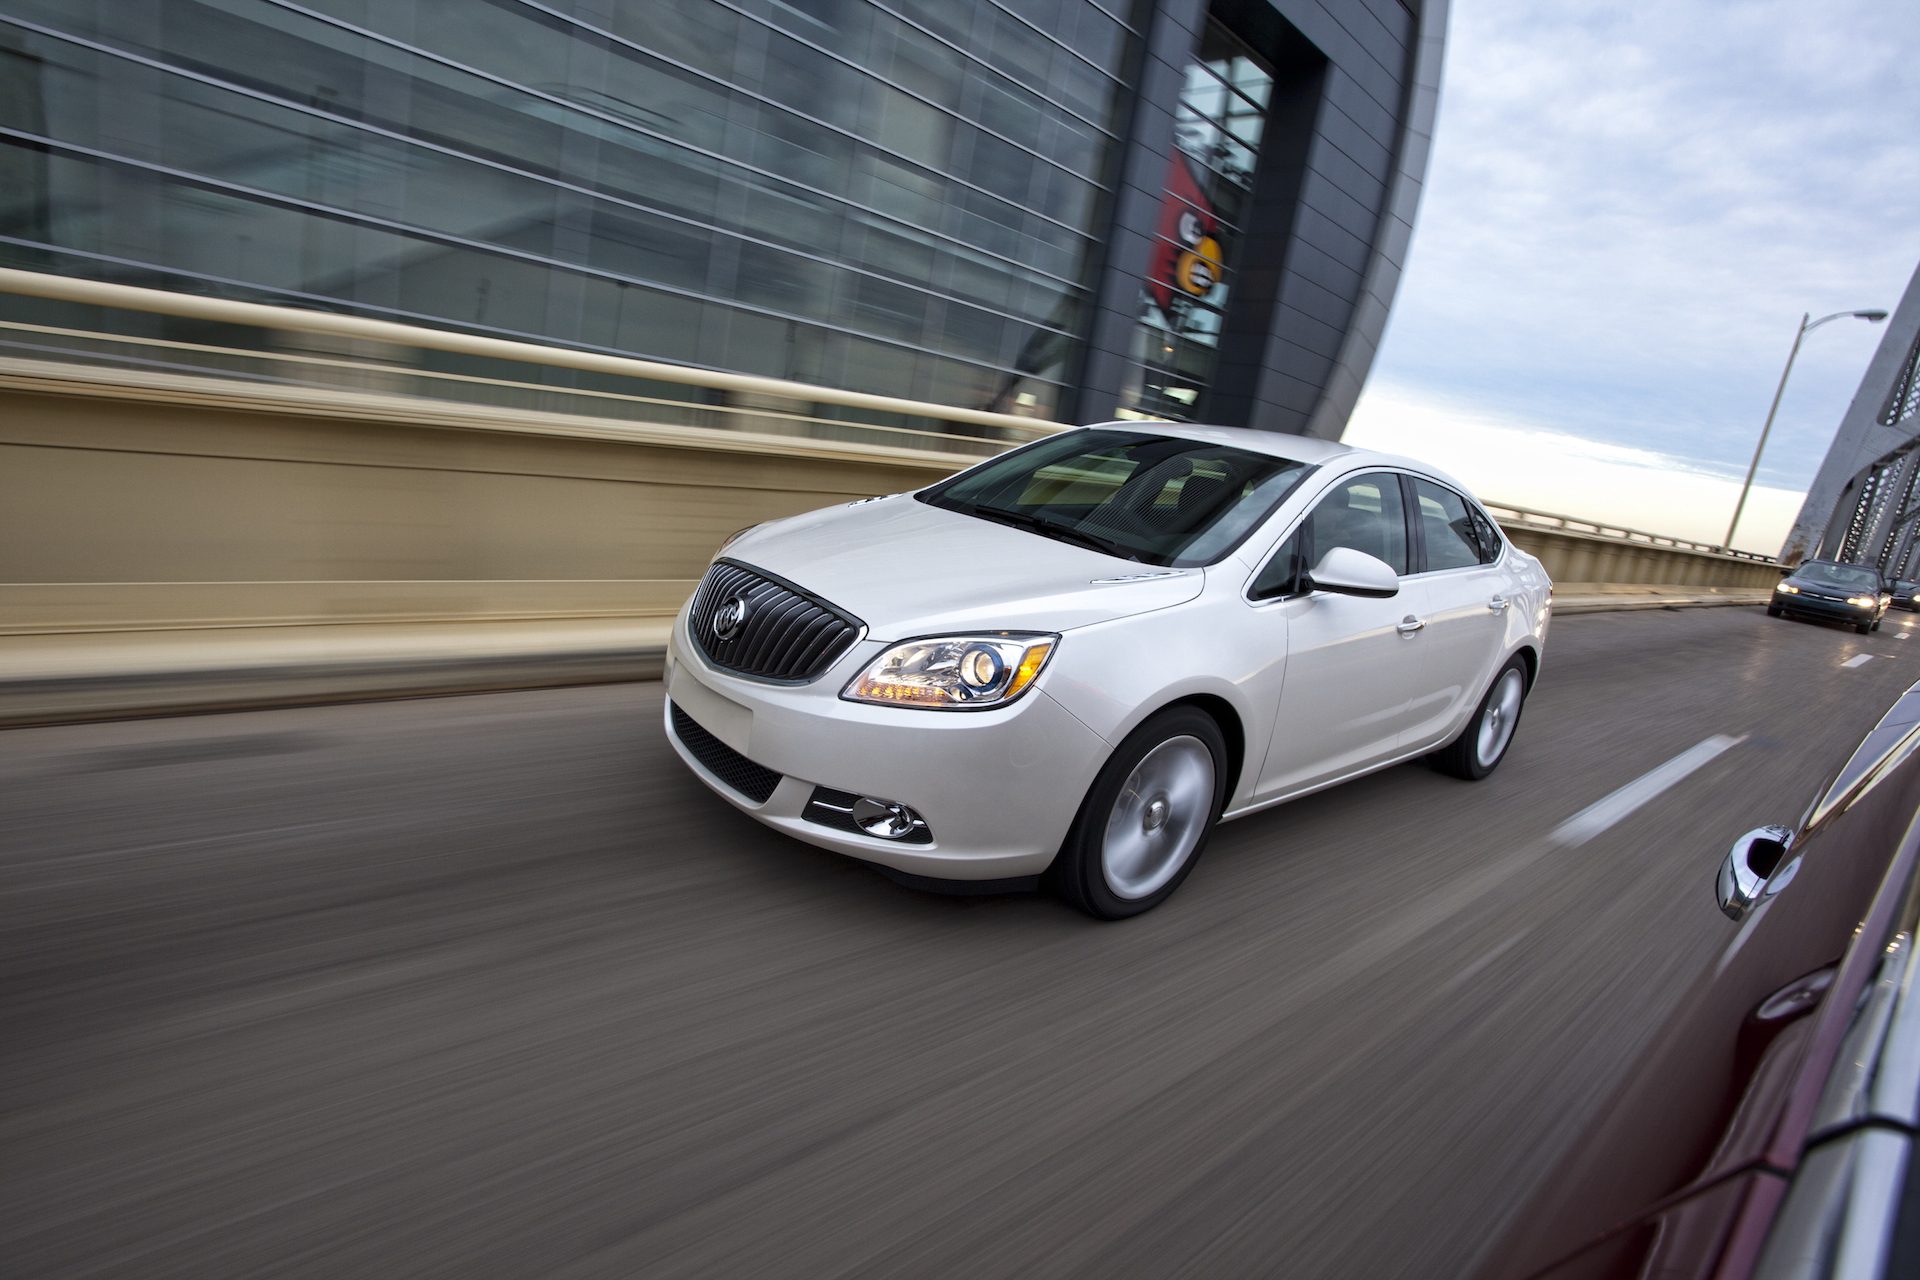 2017 Buick Verano Review, Ratings, Specs, Prices, And